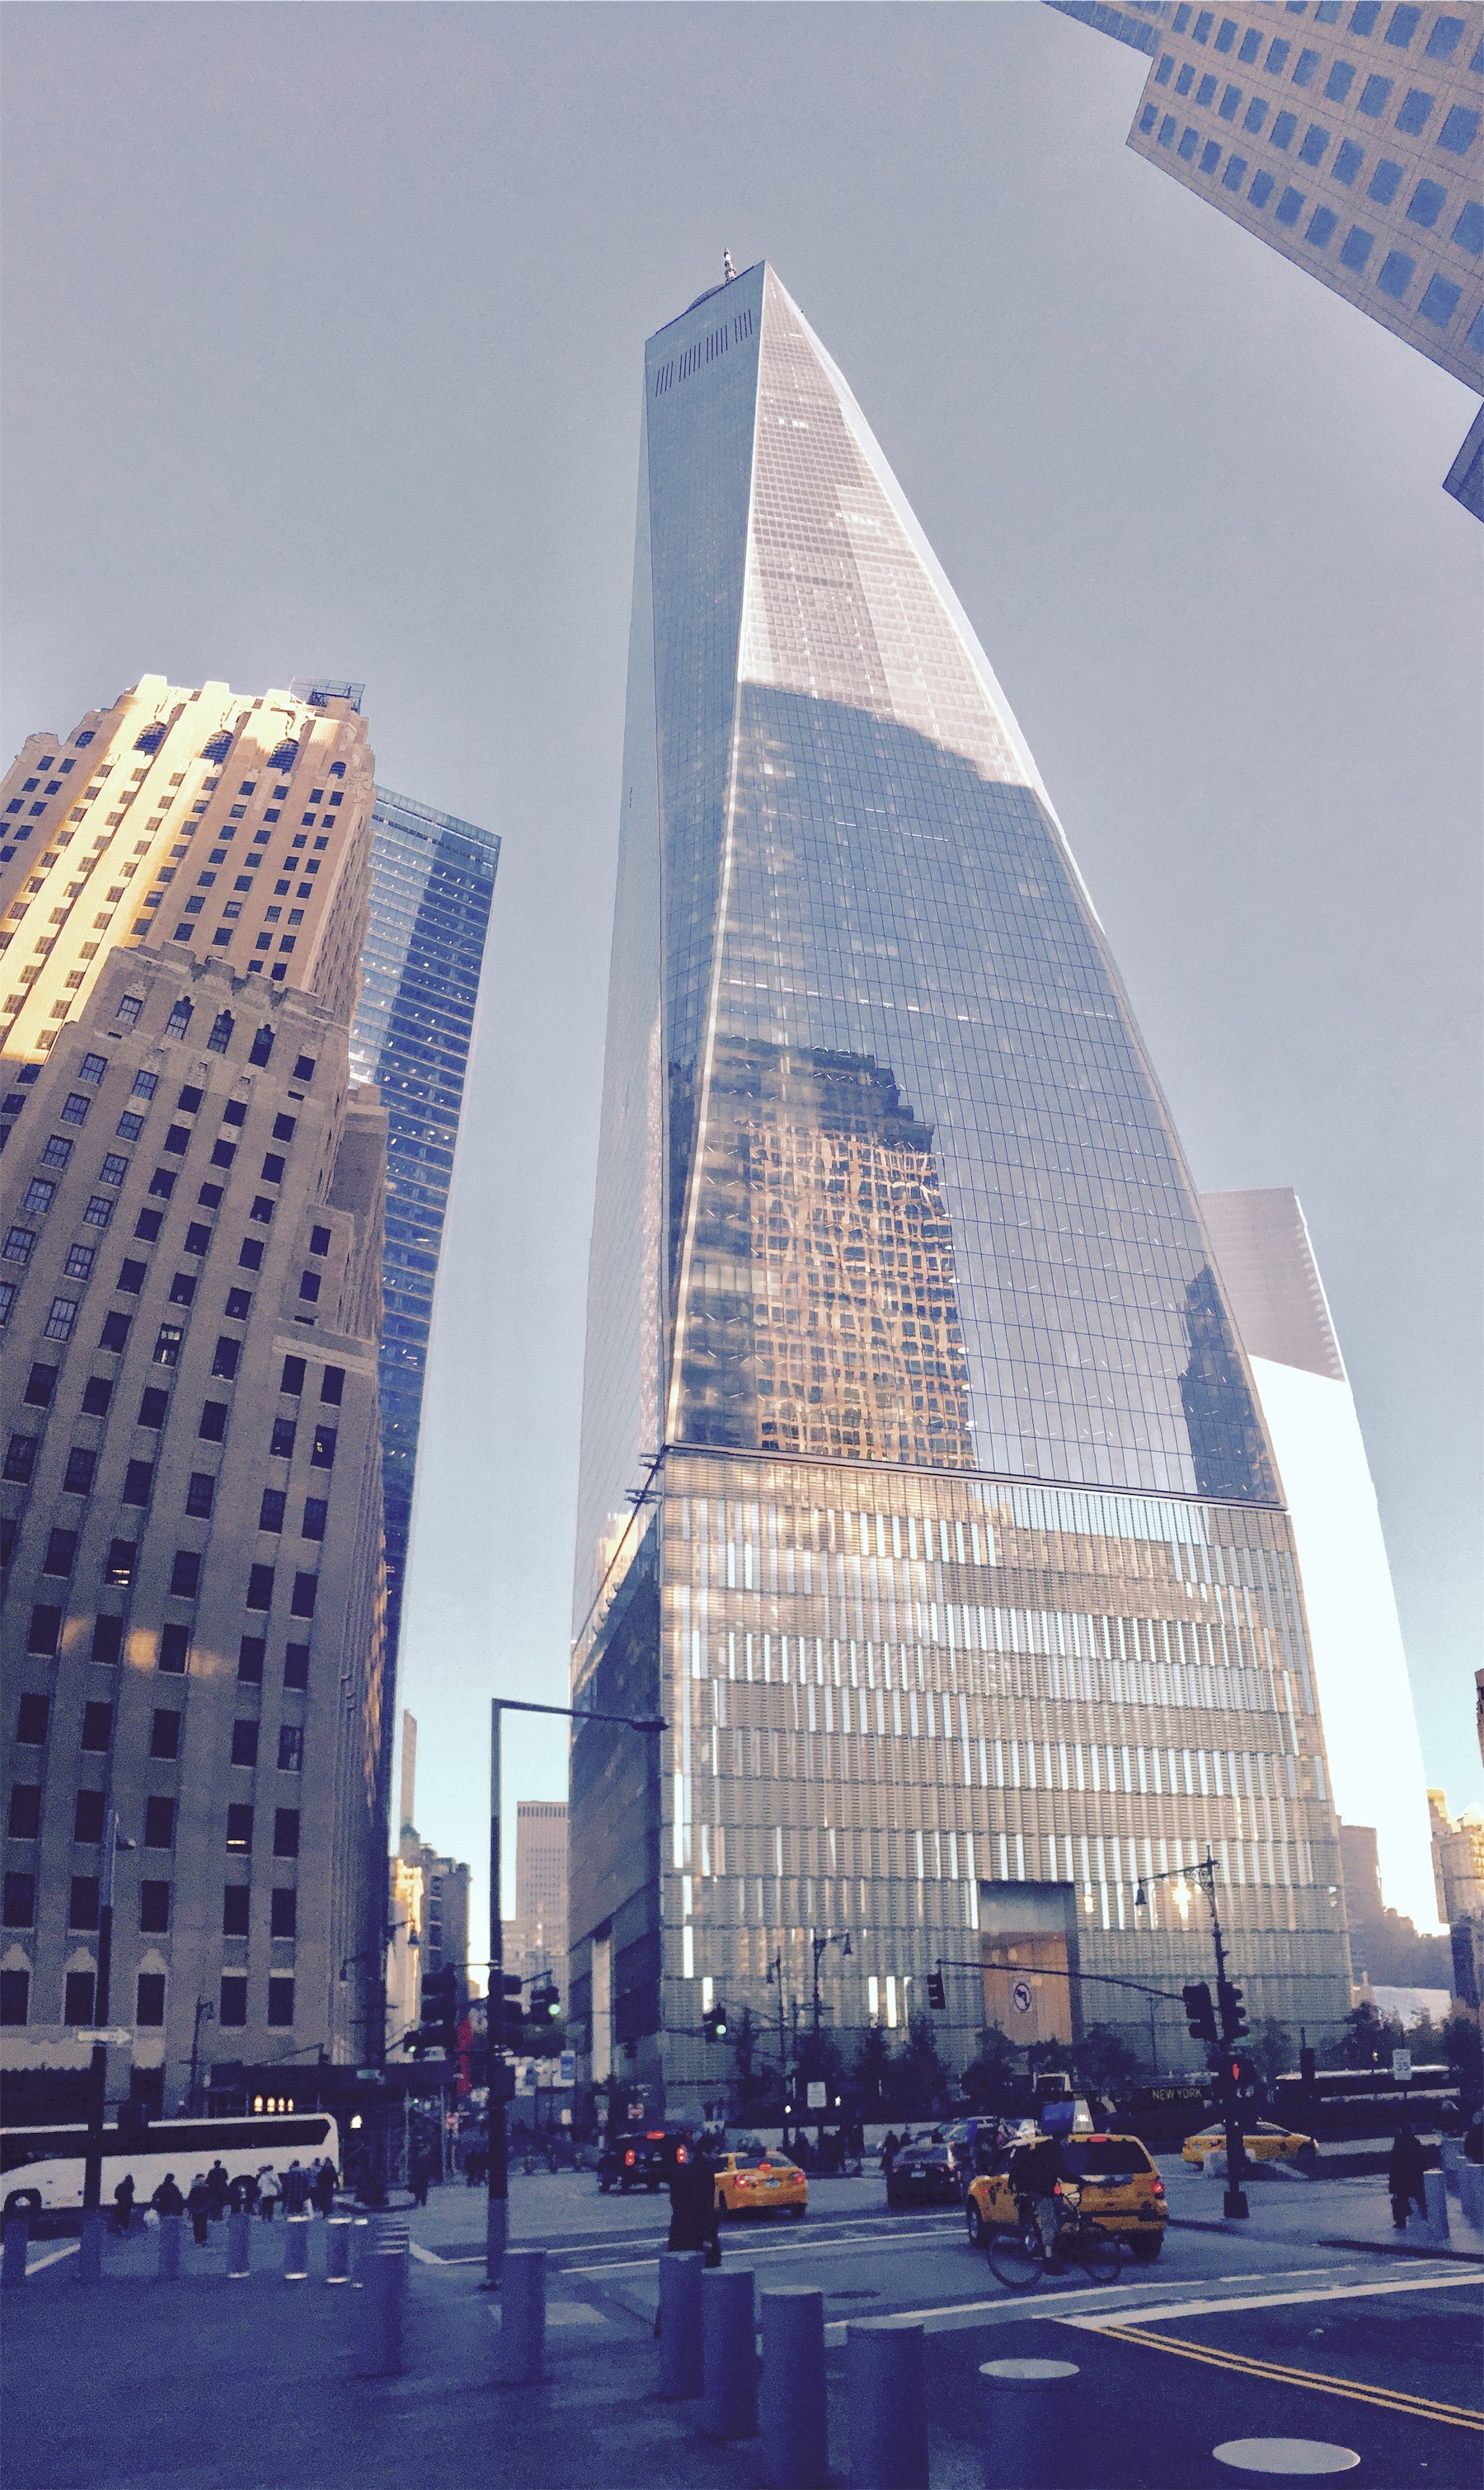 Ciudad en One World Trade Center